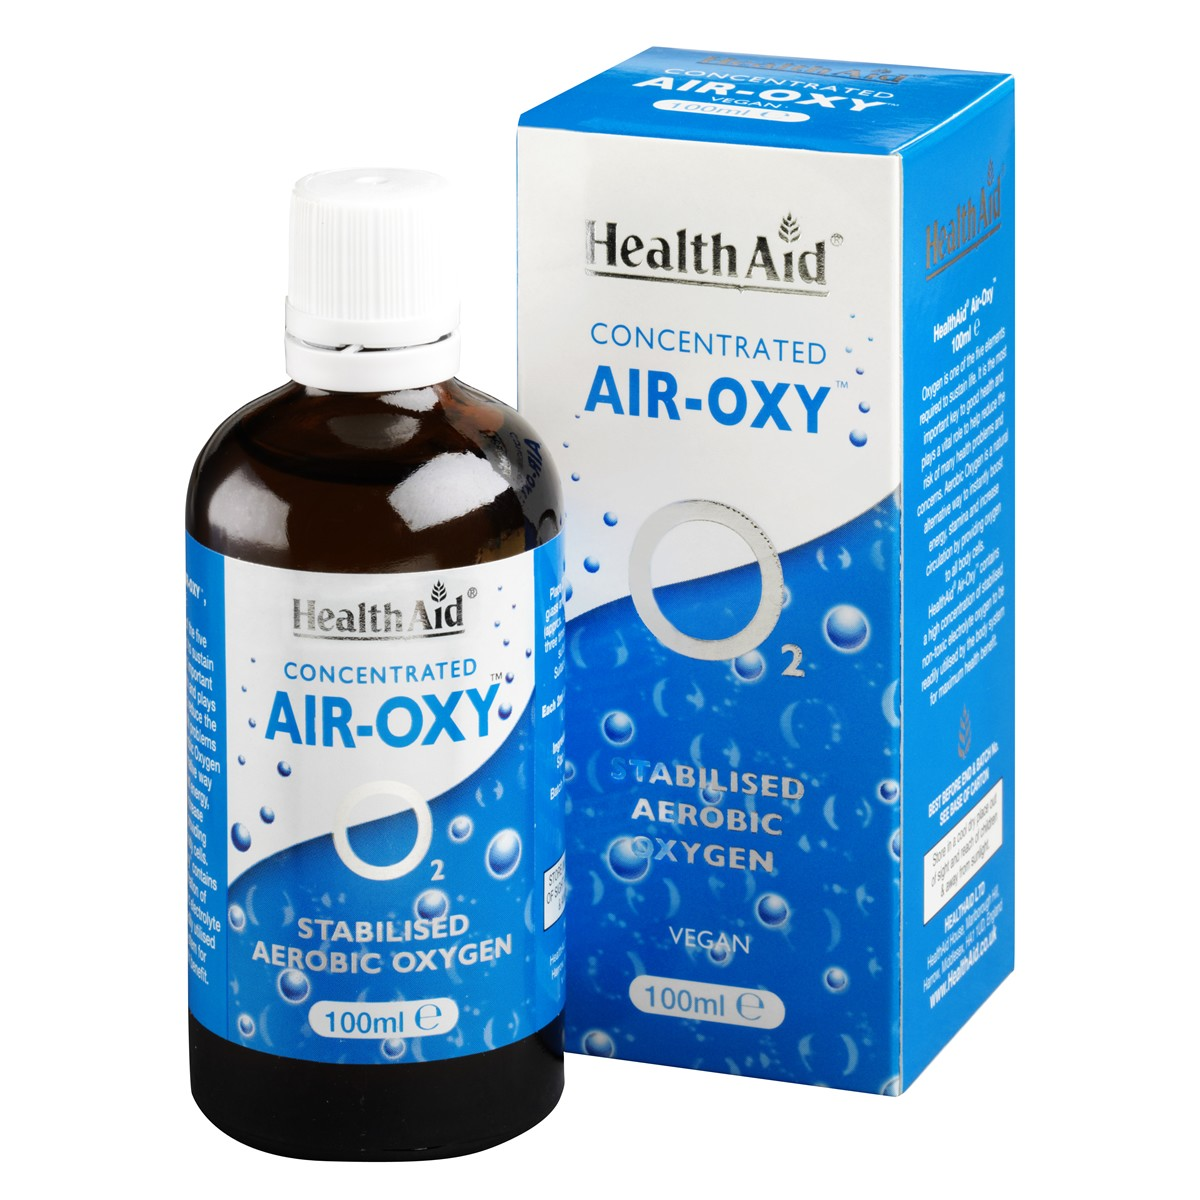 HealthAid Air Oxy (Stabilised Aerobic Oxygen) Liquid